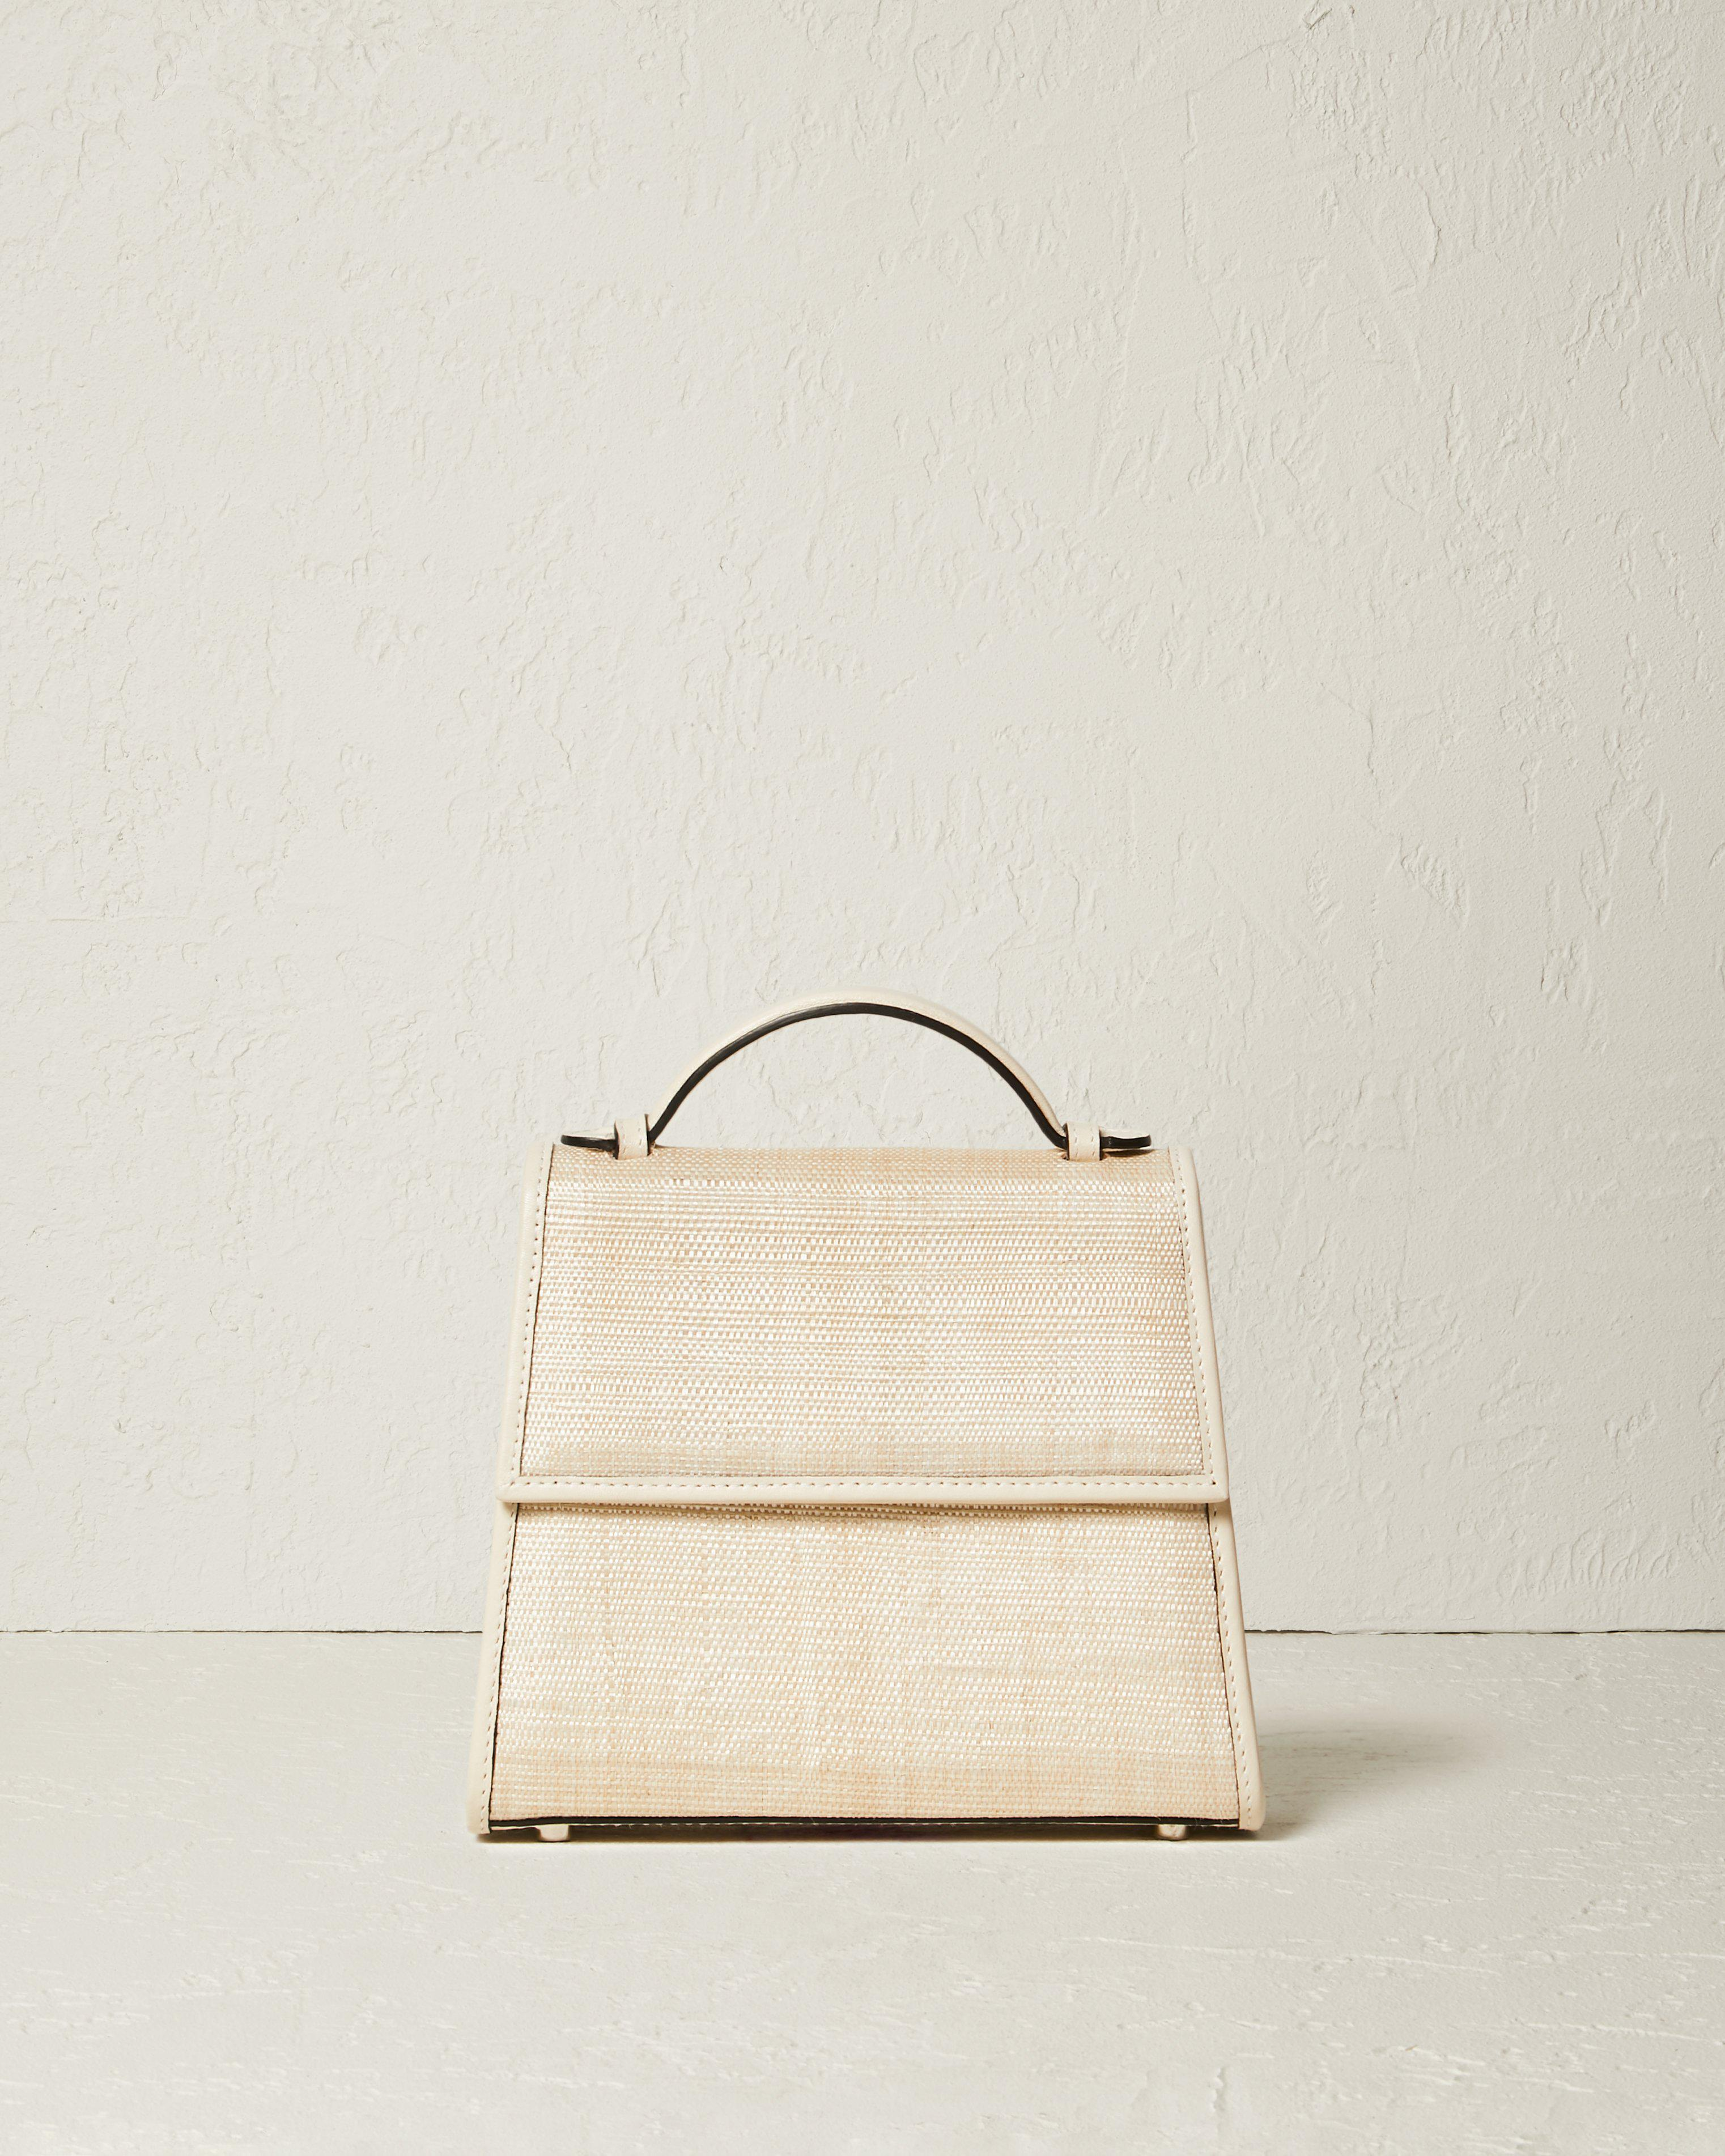 The Small Top Handle in Woven Fique